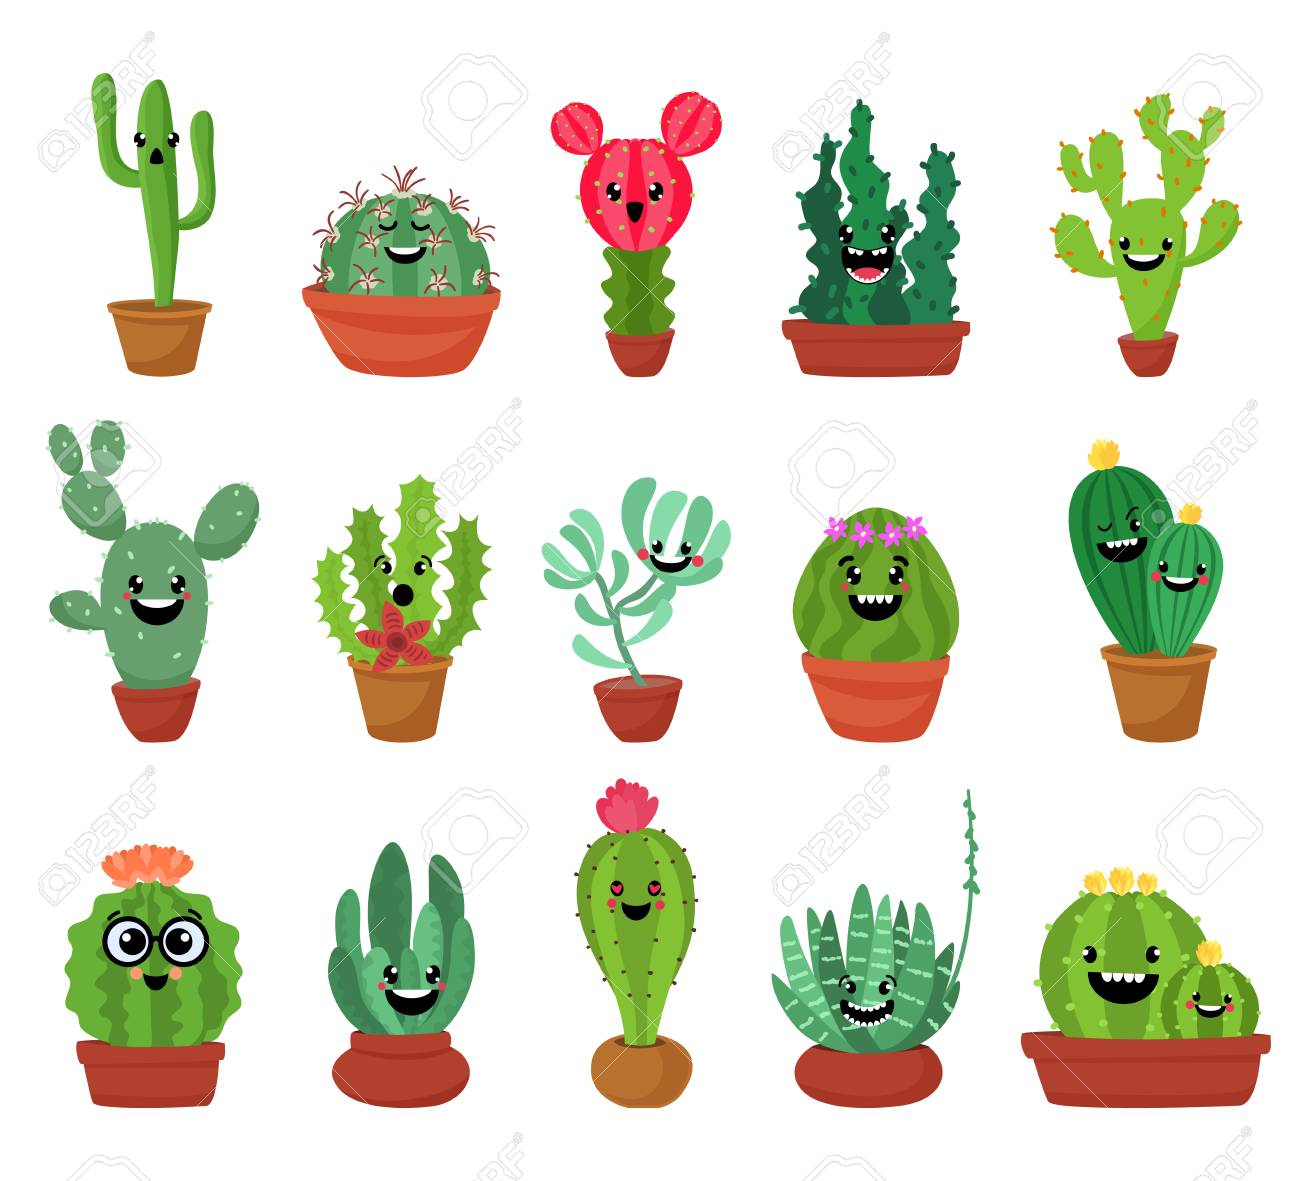 Big Set Of Cute Cartoon Cactus And Succulents With Funny Faces Royalty Free Cliparts Vectors And Stock Illustration Image 79938412